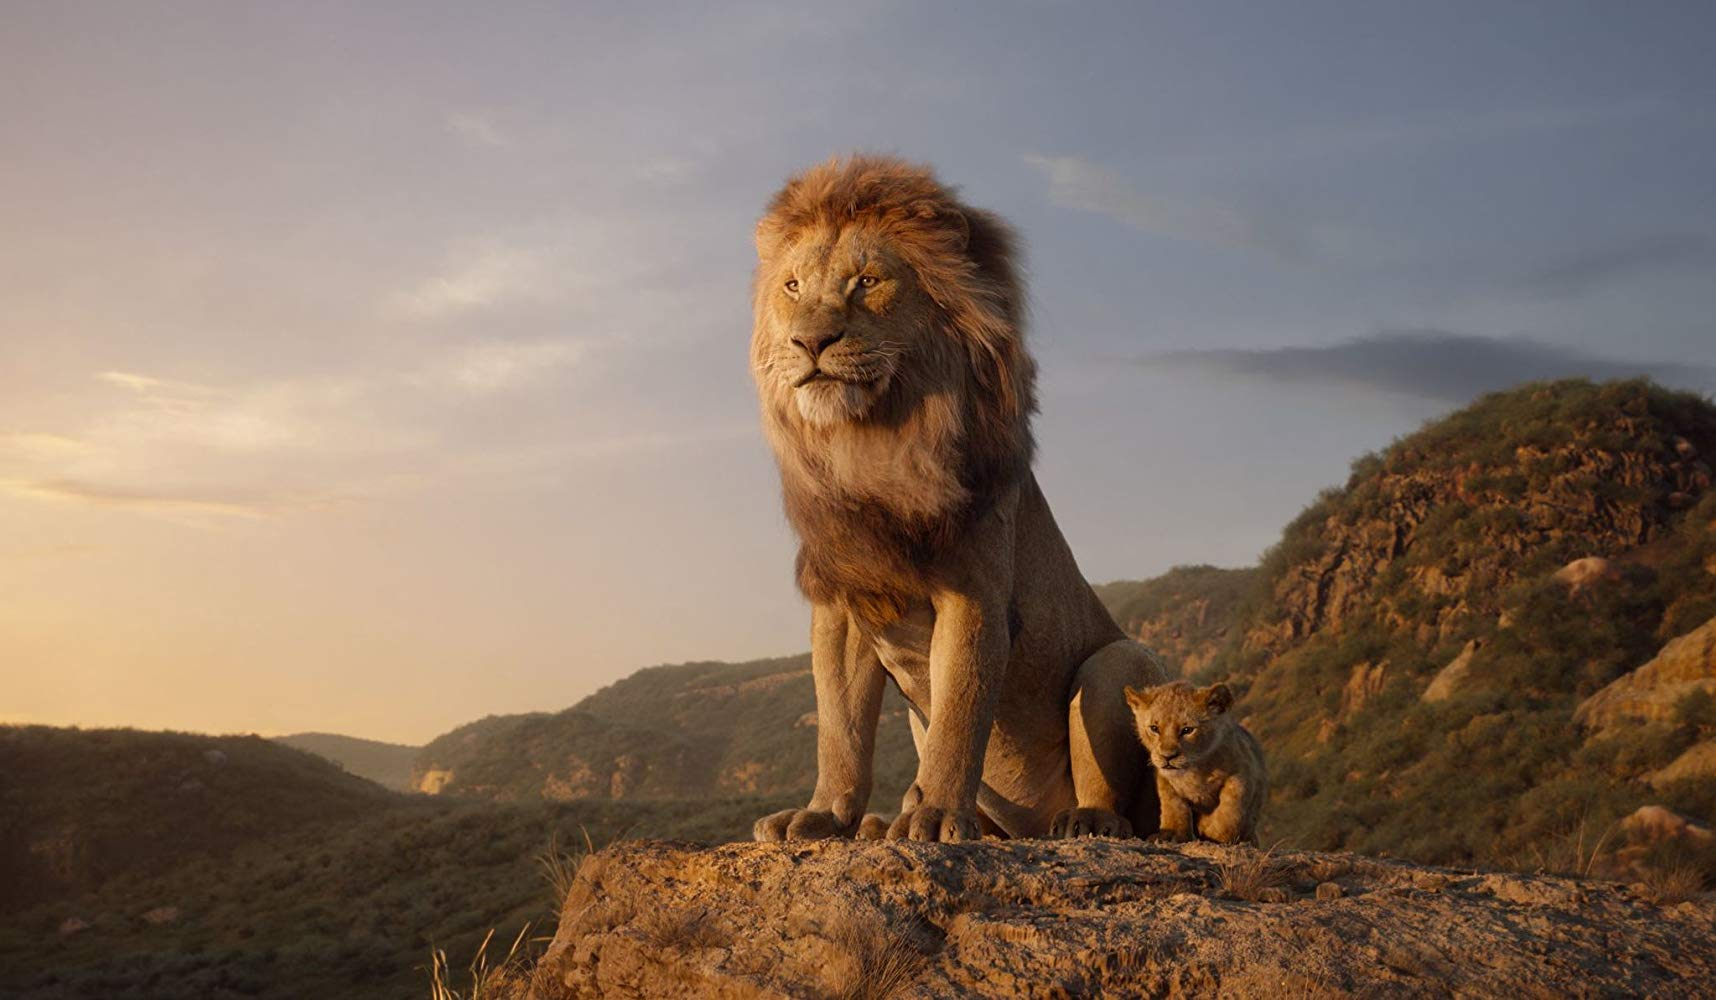 Image roi lion king film disney